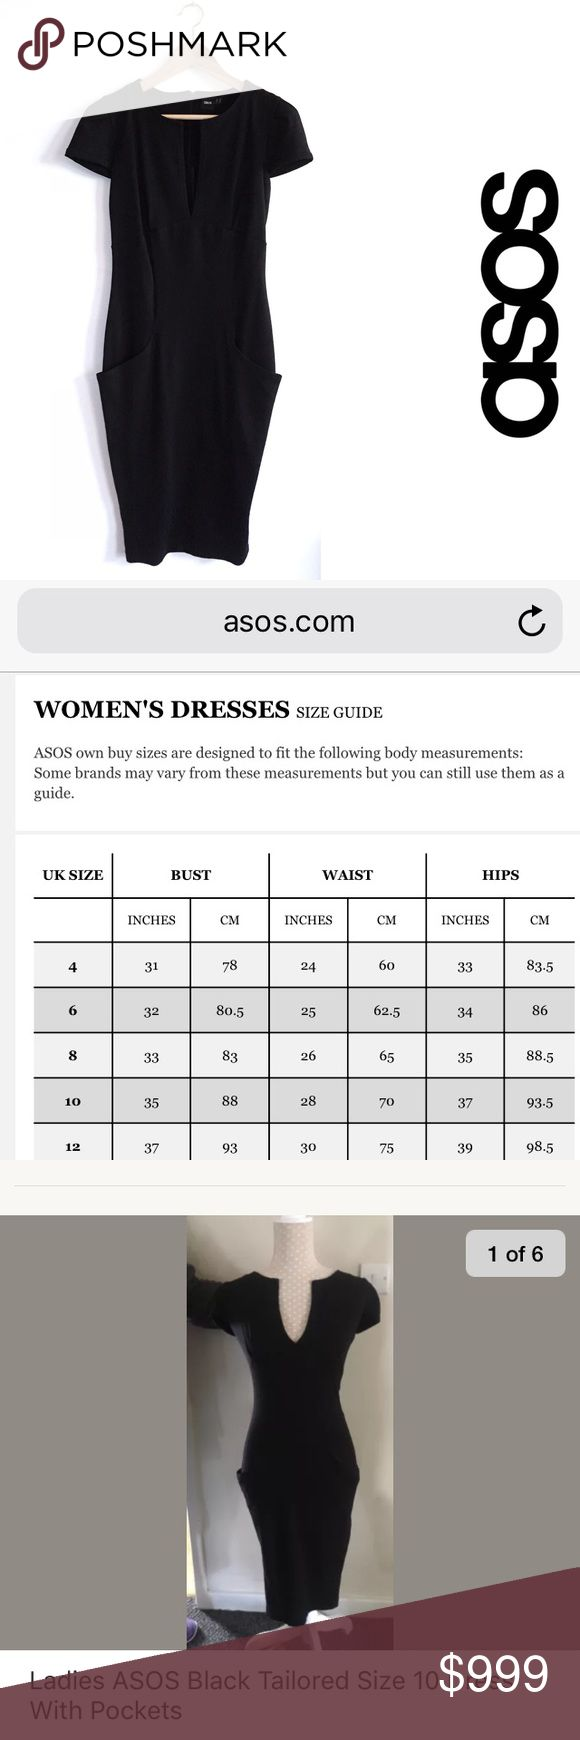 """*Additional Information* Additional Information for ASOS Fitted Ponte Dress.  This dress is labeled a US Size 10. All photos are of the garment for sale. The tag says UK14/US10 (photo #2). Measurements from the actual garment were included in the original listing description (photo #3).  ASOS Dress Size Chart (photo #4) indicates the waist dimensions are identical to what is listed for the garment that was sold; 28"""" around = 14"""" flat.  The last photo is from an EBay listing selling the same…"""